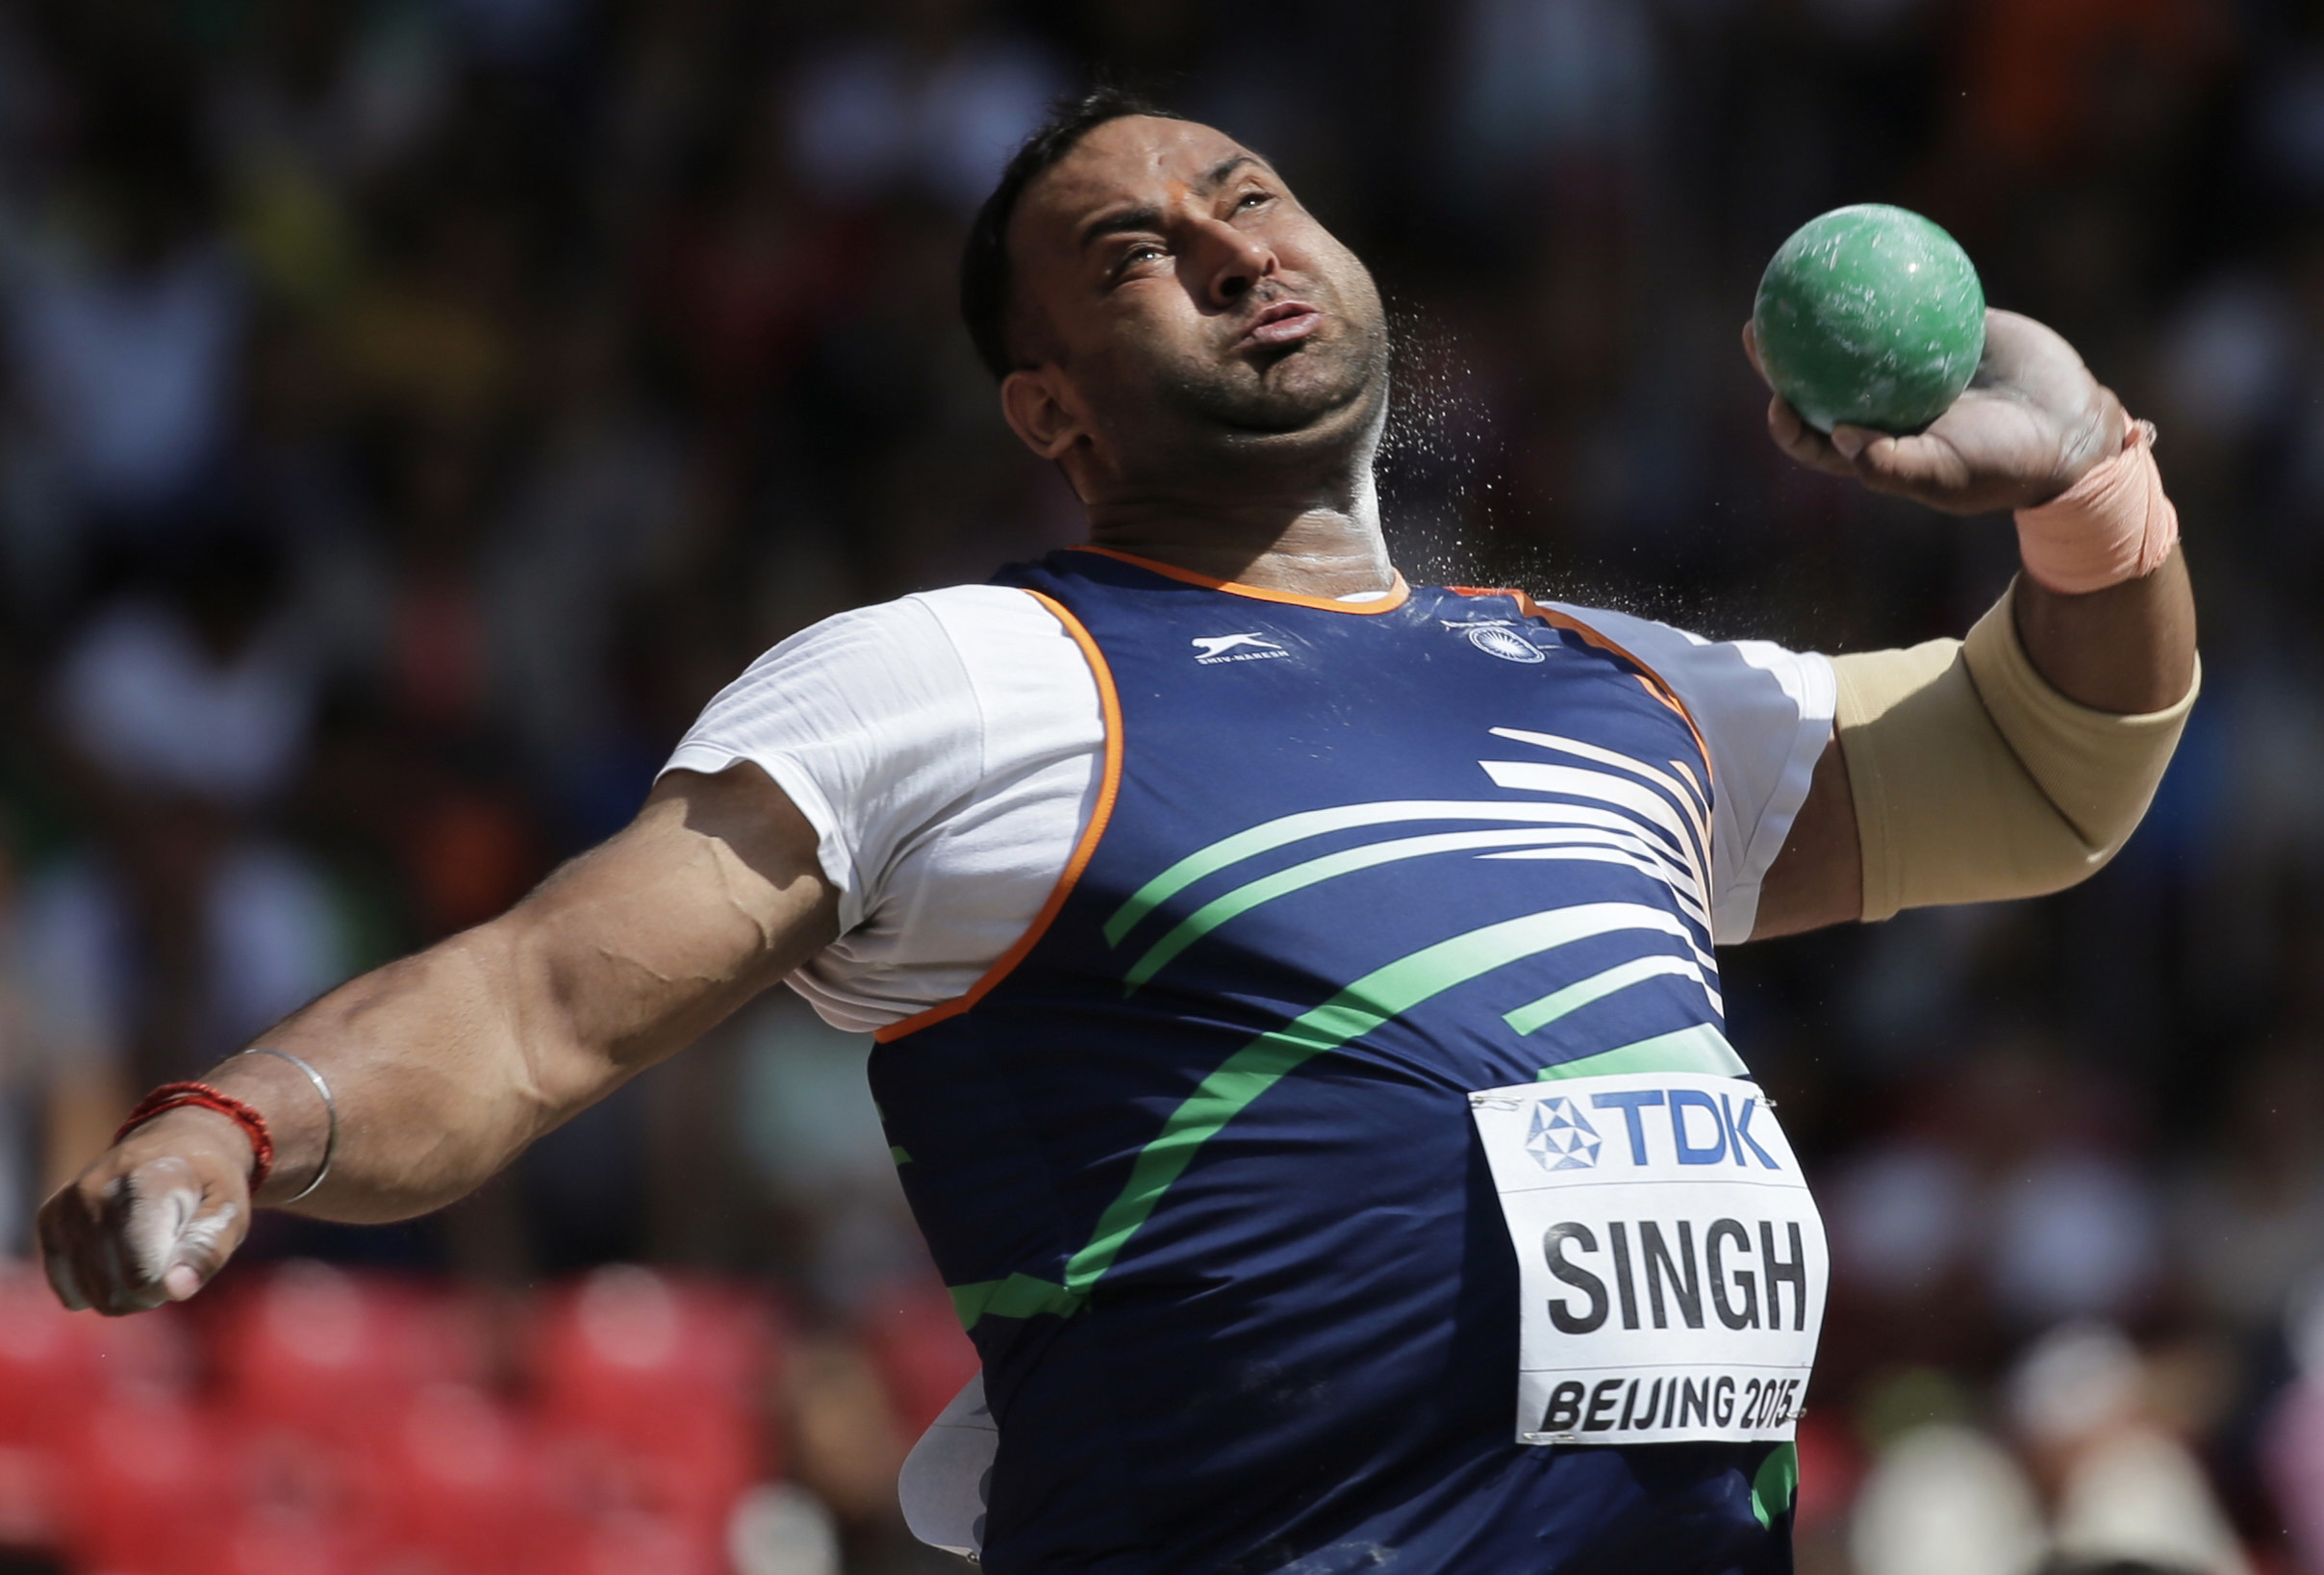 FILE- In this Aug. 23, 2015, file photo, India's Inderjeet Singh competes in men's shot put qualification at the World Athletics Championships at the Bird's Nest Stadium in Beijing.  Singh, who had won a bronze at the 2014 Asian Games and was a medal hope